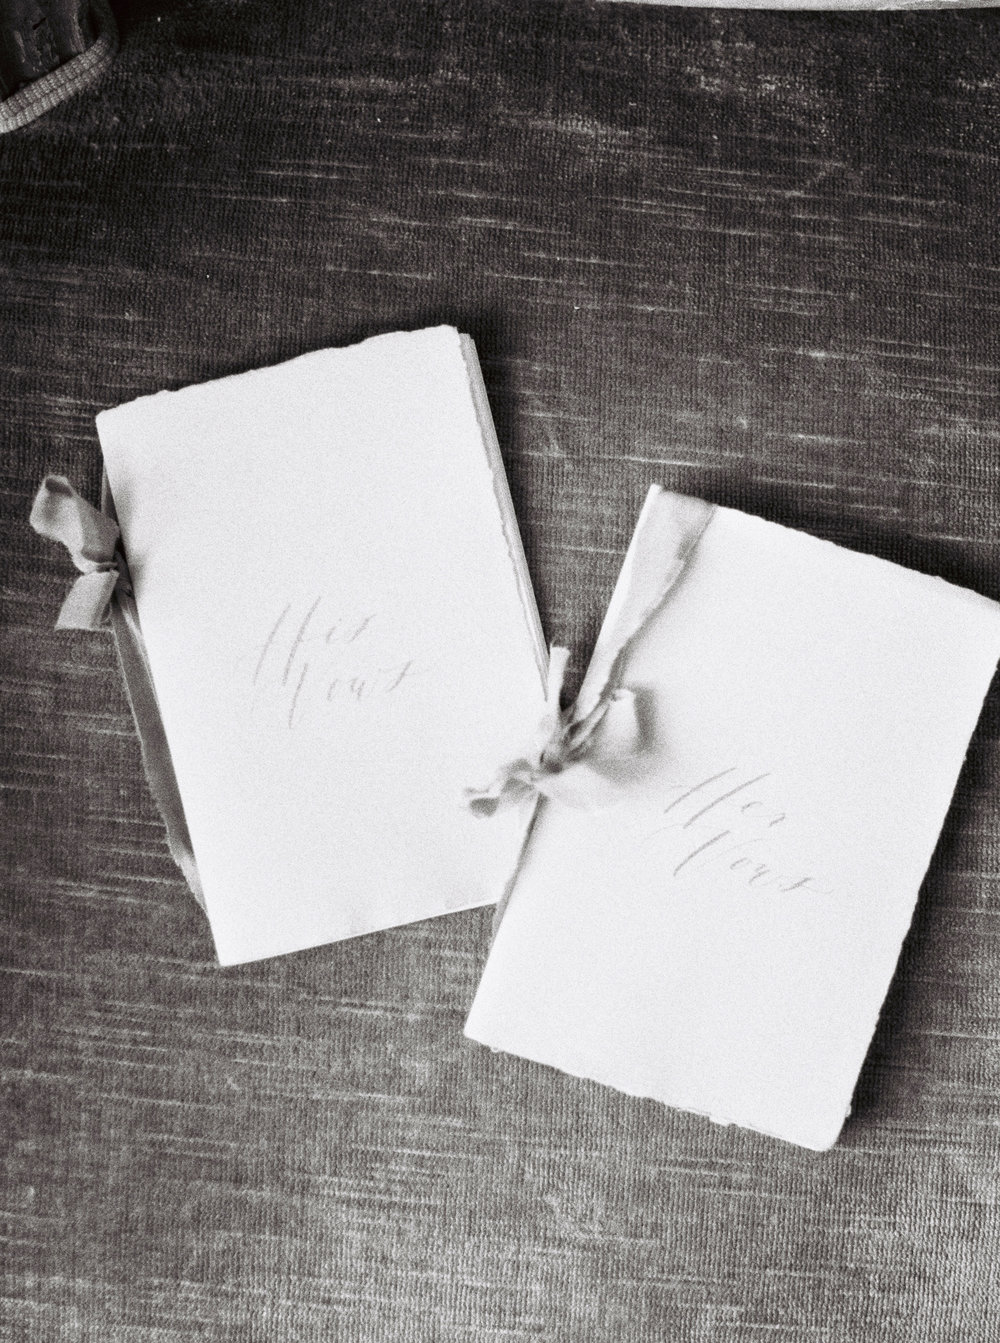 Vow books for the bride and groom.